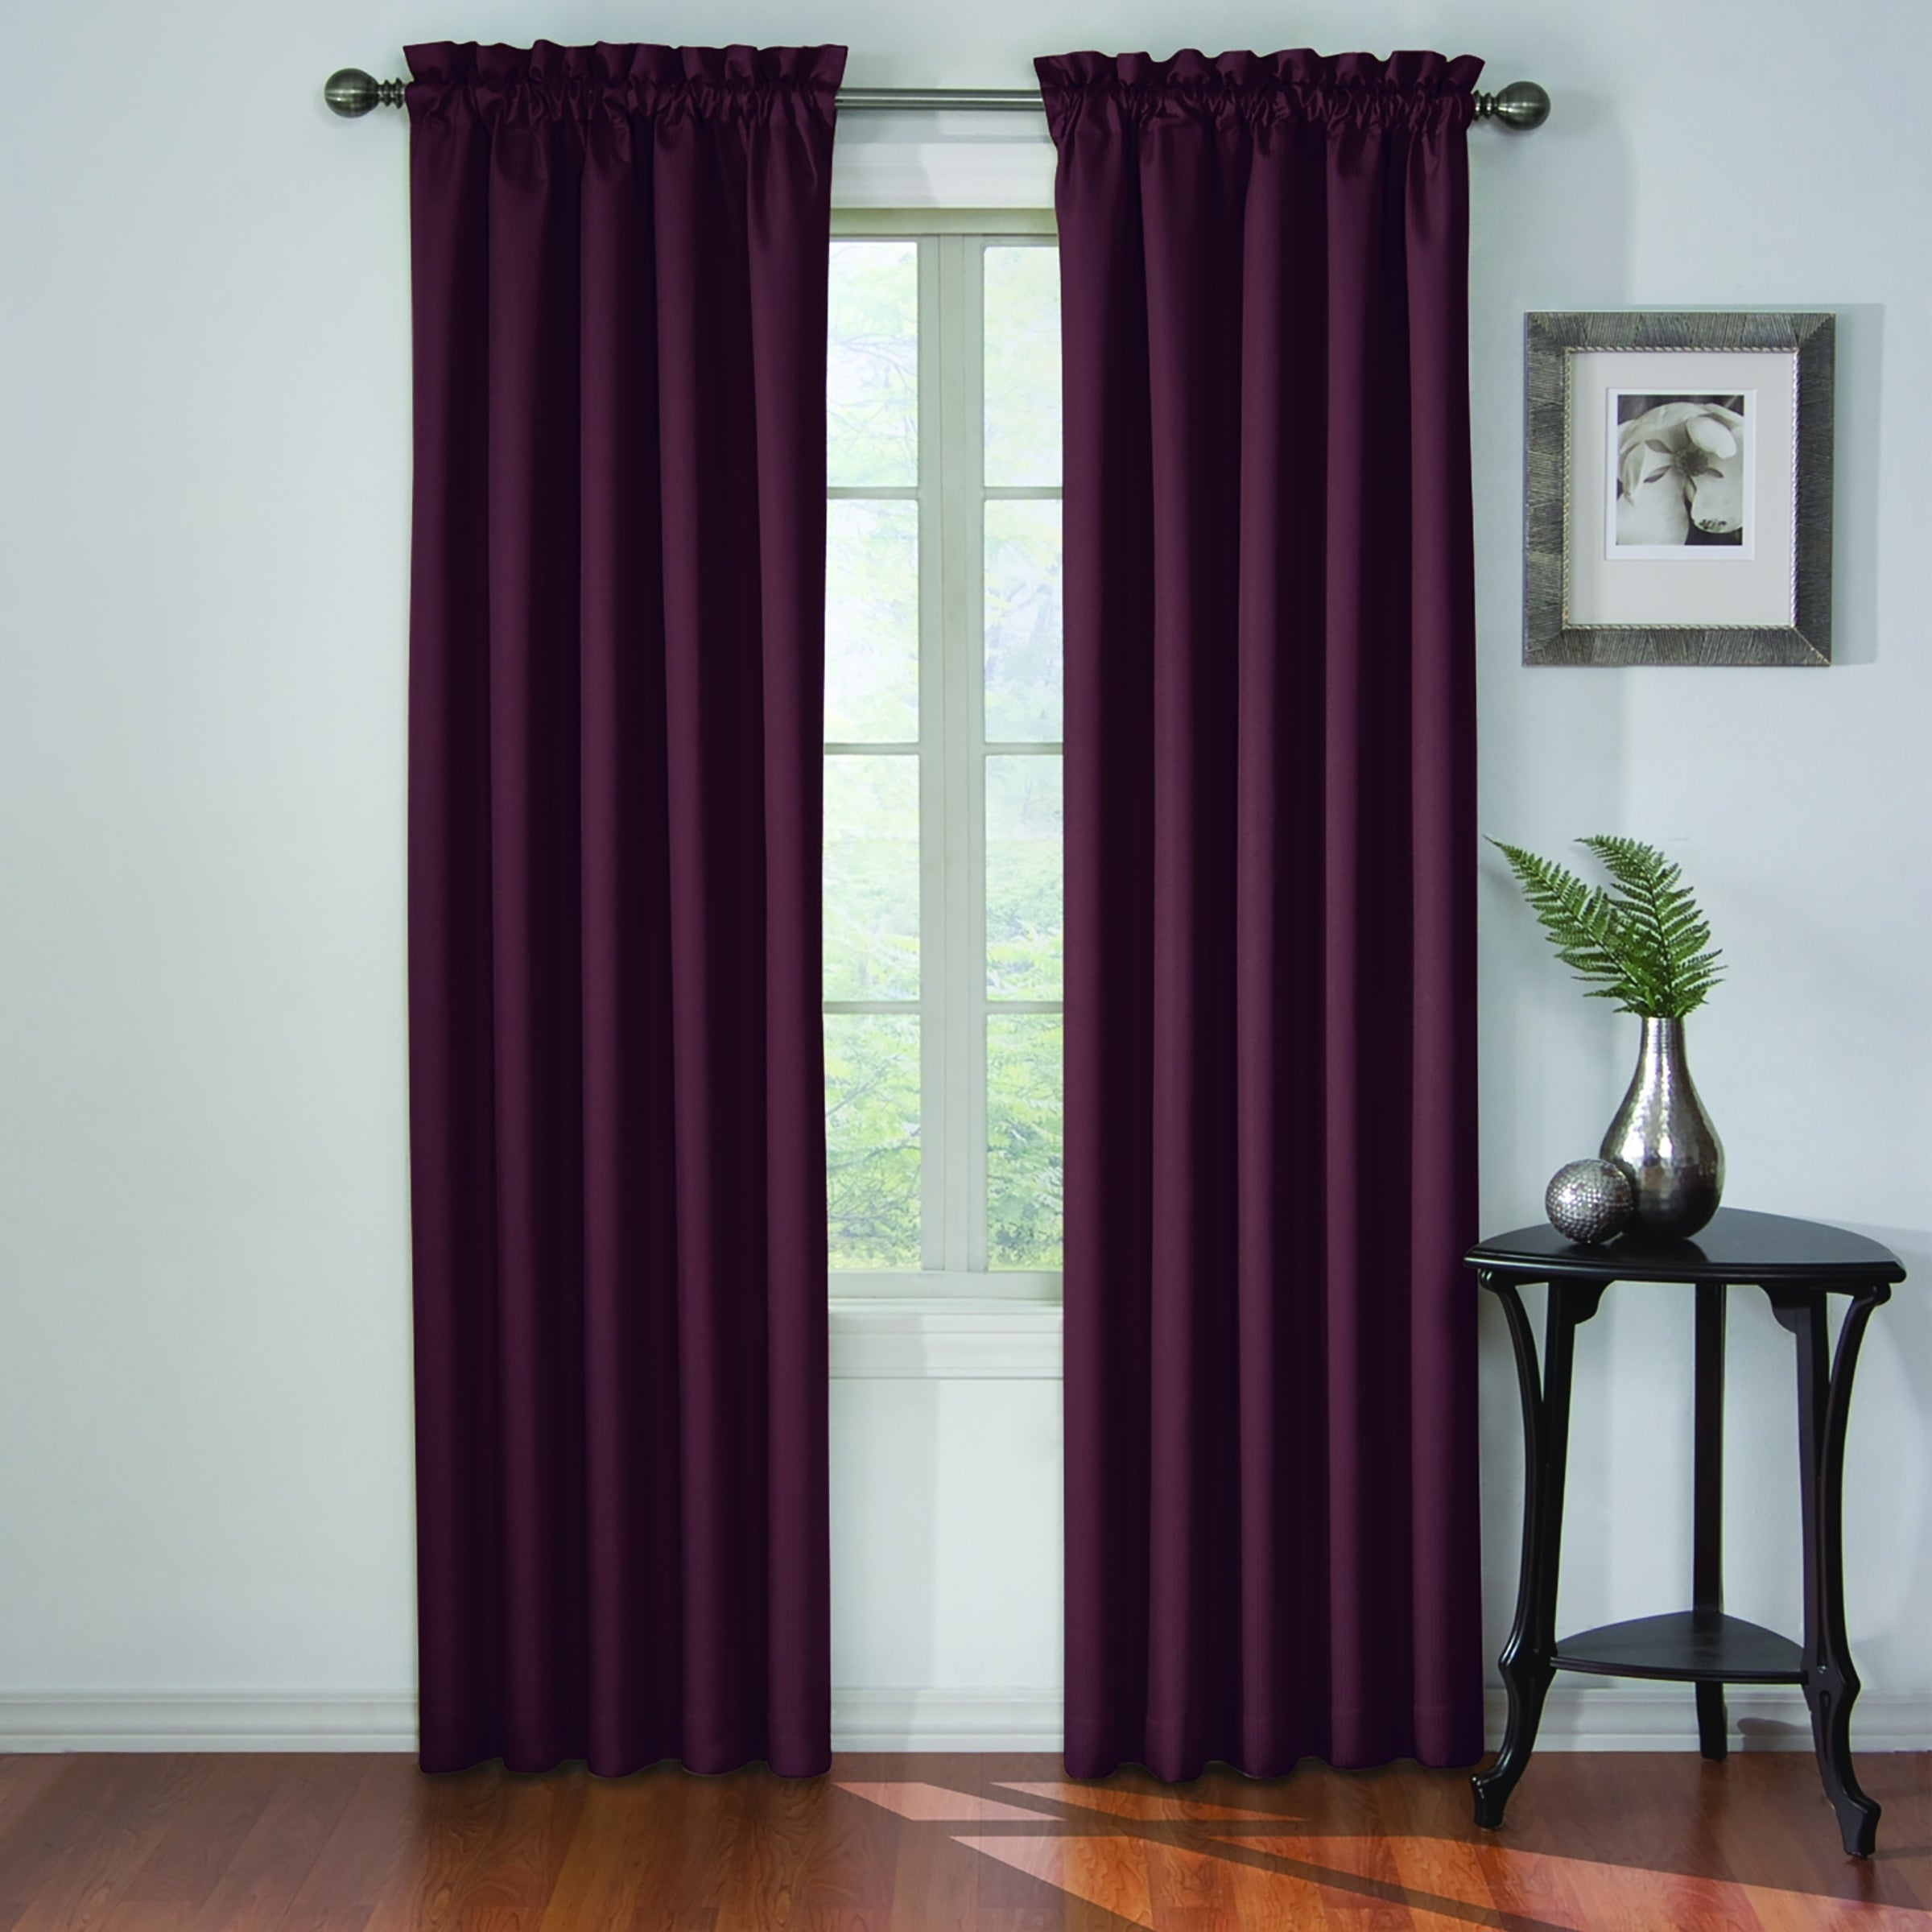 Eclipse Corinne Thermaback Curtain Panel Pertaining To Eclipse Corinne Thermaback Curtain Panels (View 2 of 20)